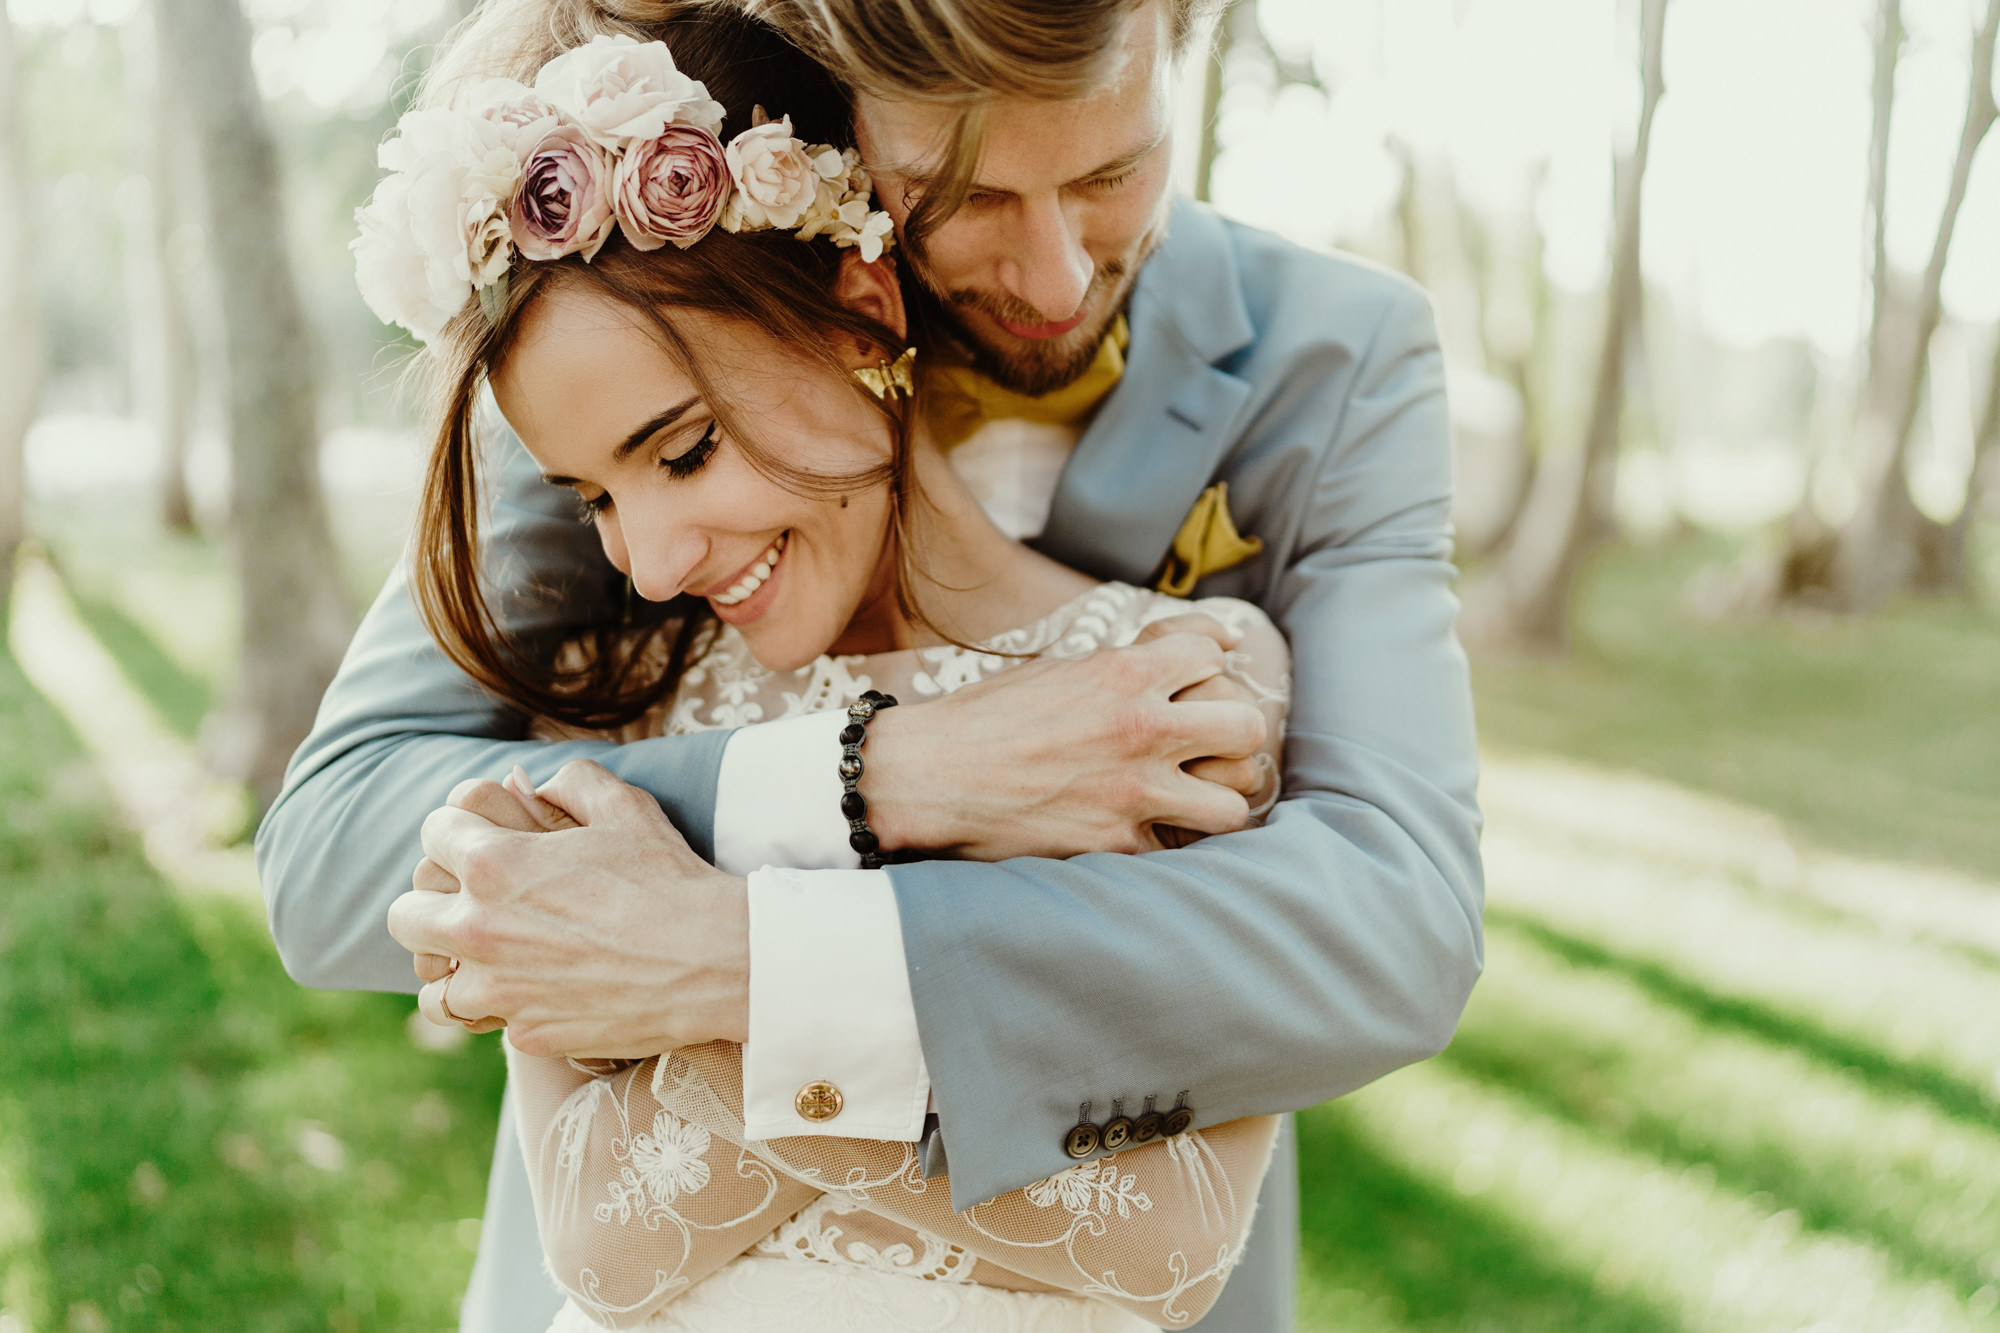 smiling-bride-in-floral-crown-and-groom-portrait-locked-in-tight-embrace-worlds-best-wedding-photos-fer-juaristi-mexico-wedding-photographers